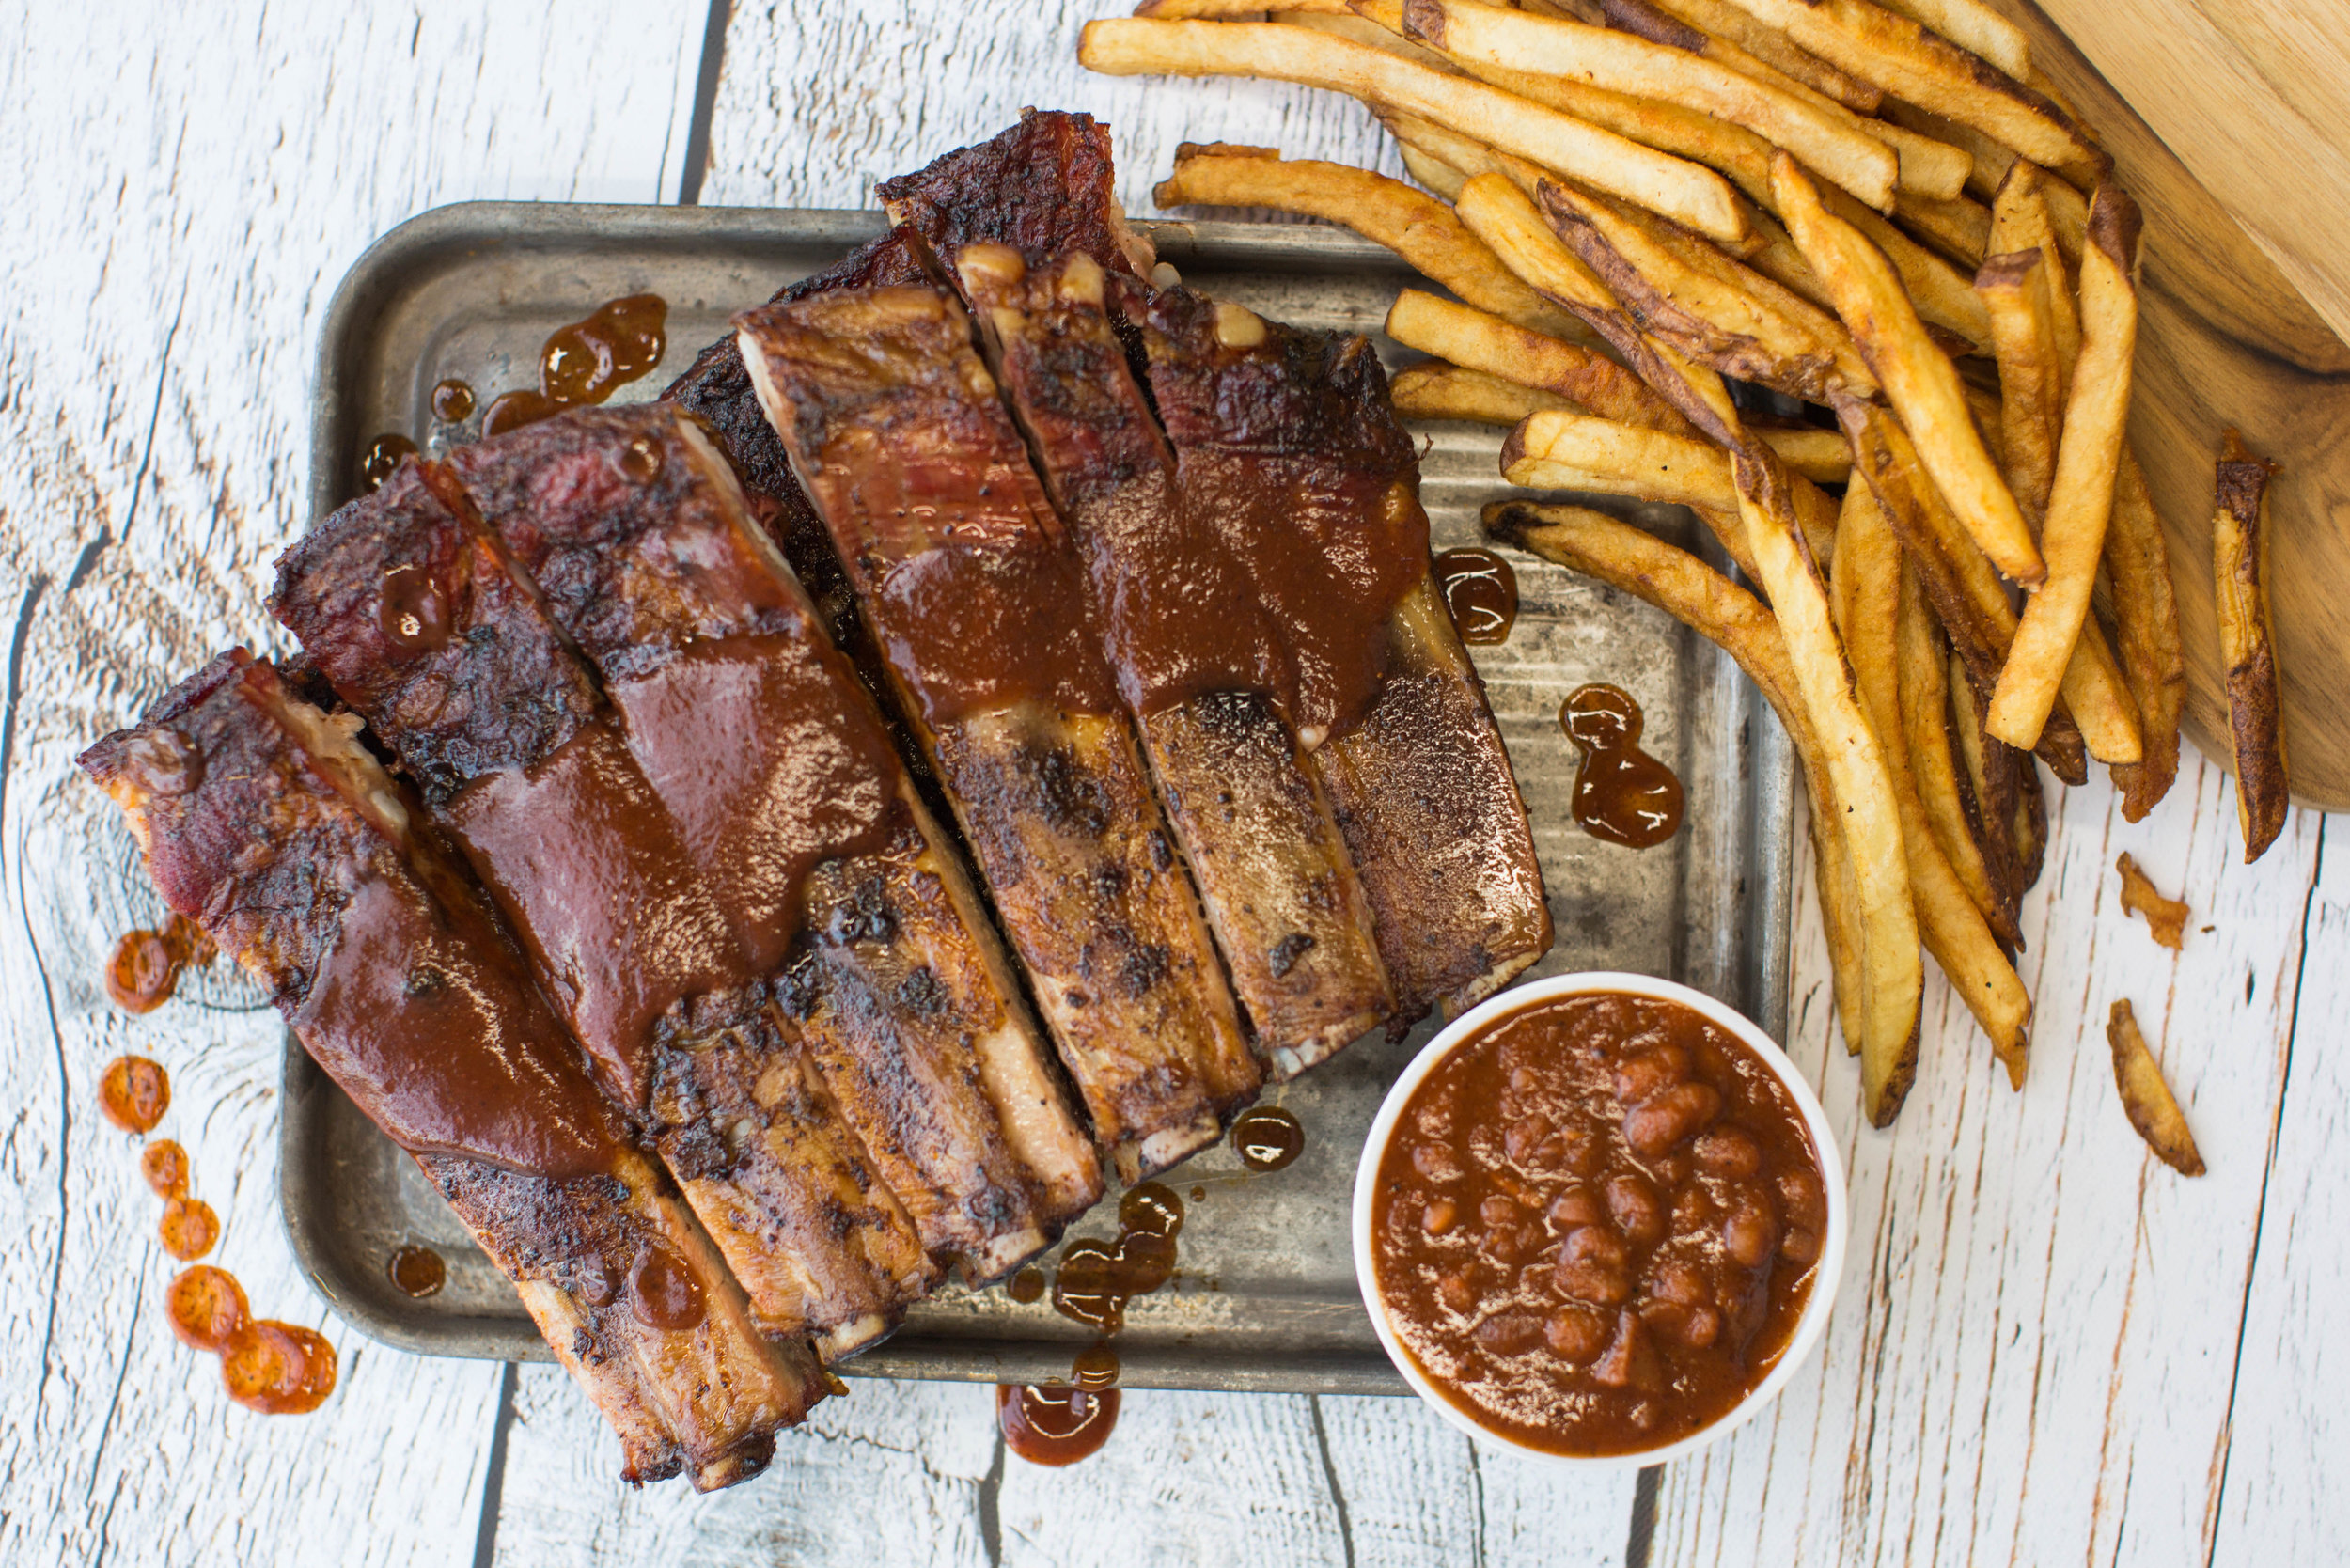 Saturday Special  Full Slab of Ribs + 2 Sides  $24.90